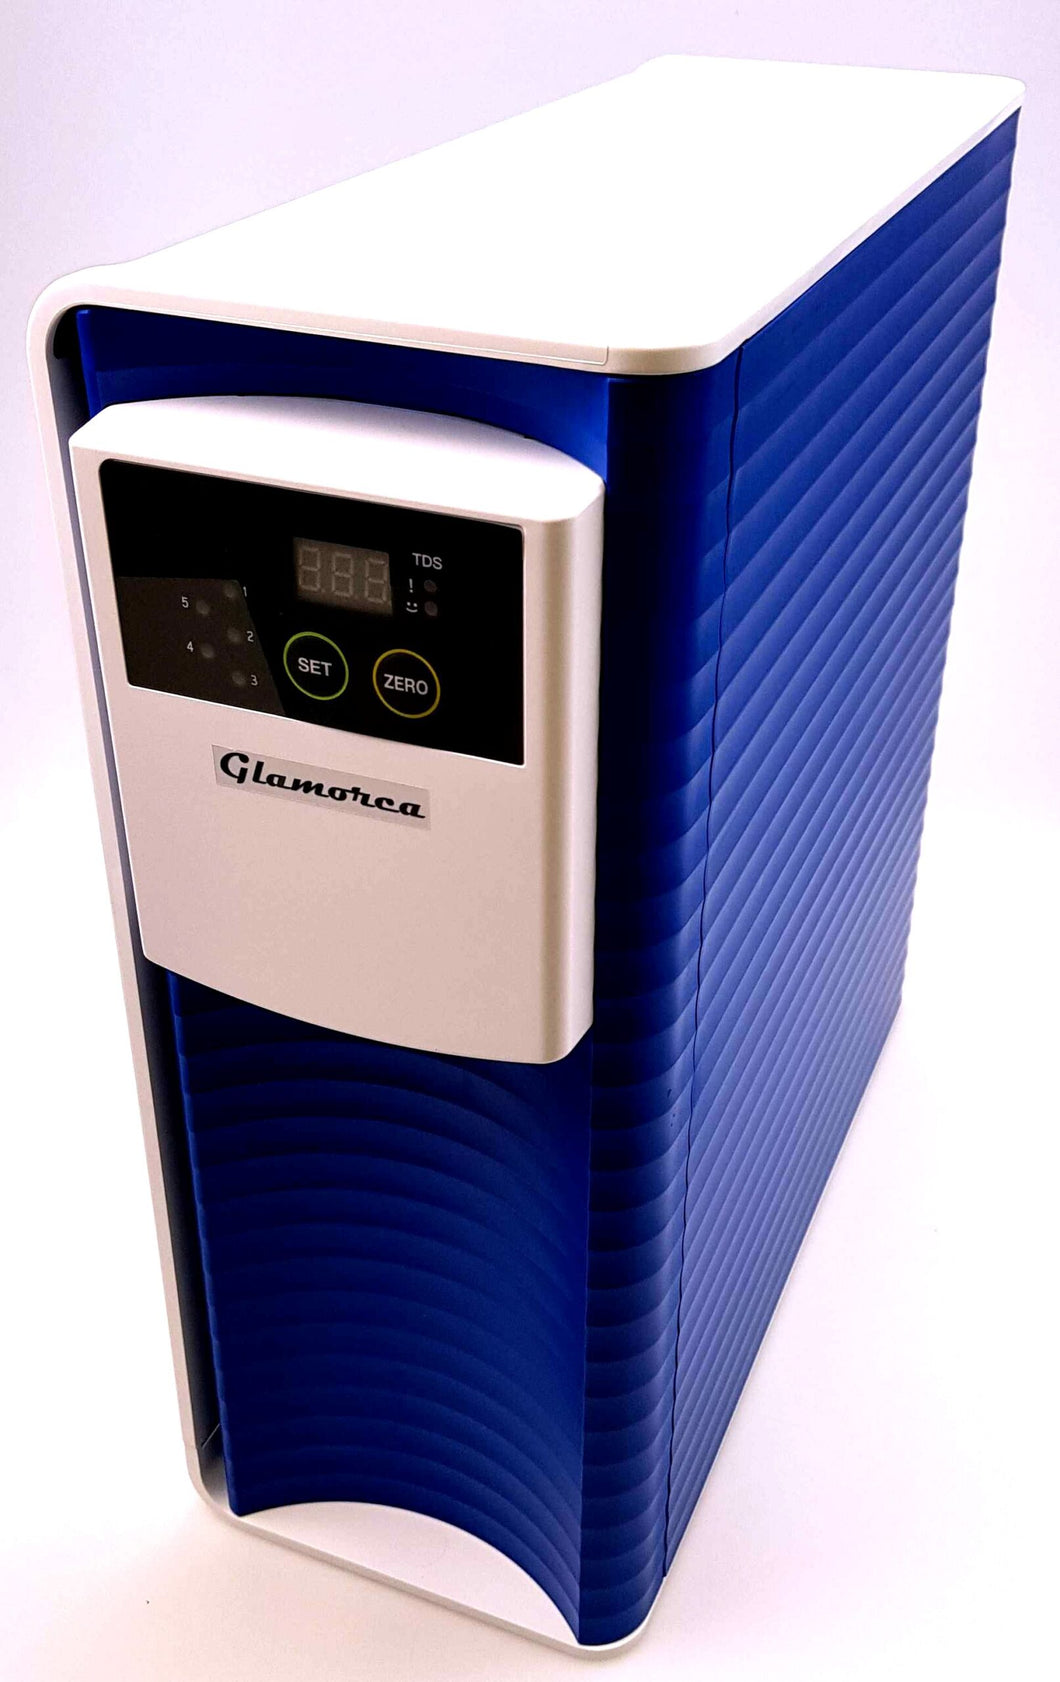 Glamorca RO-1 unit with built in TDS meter